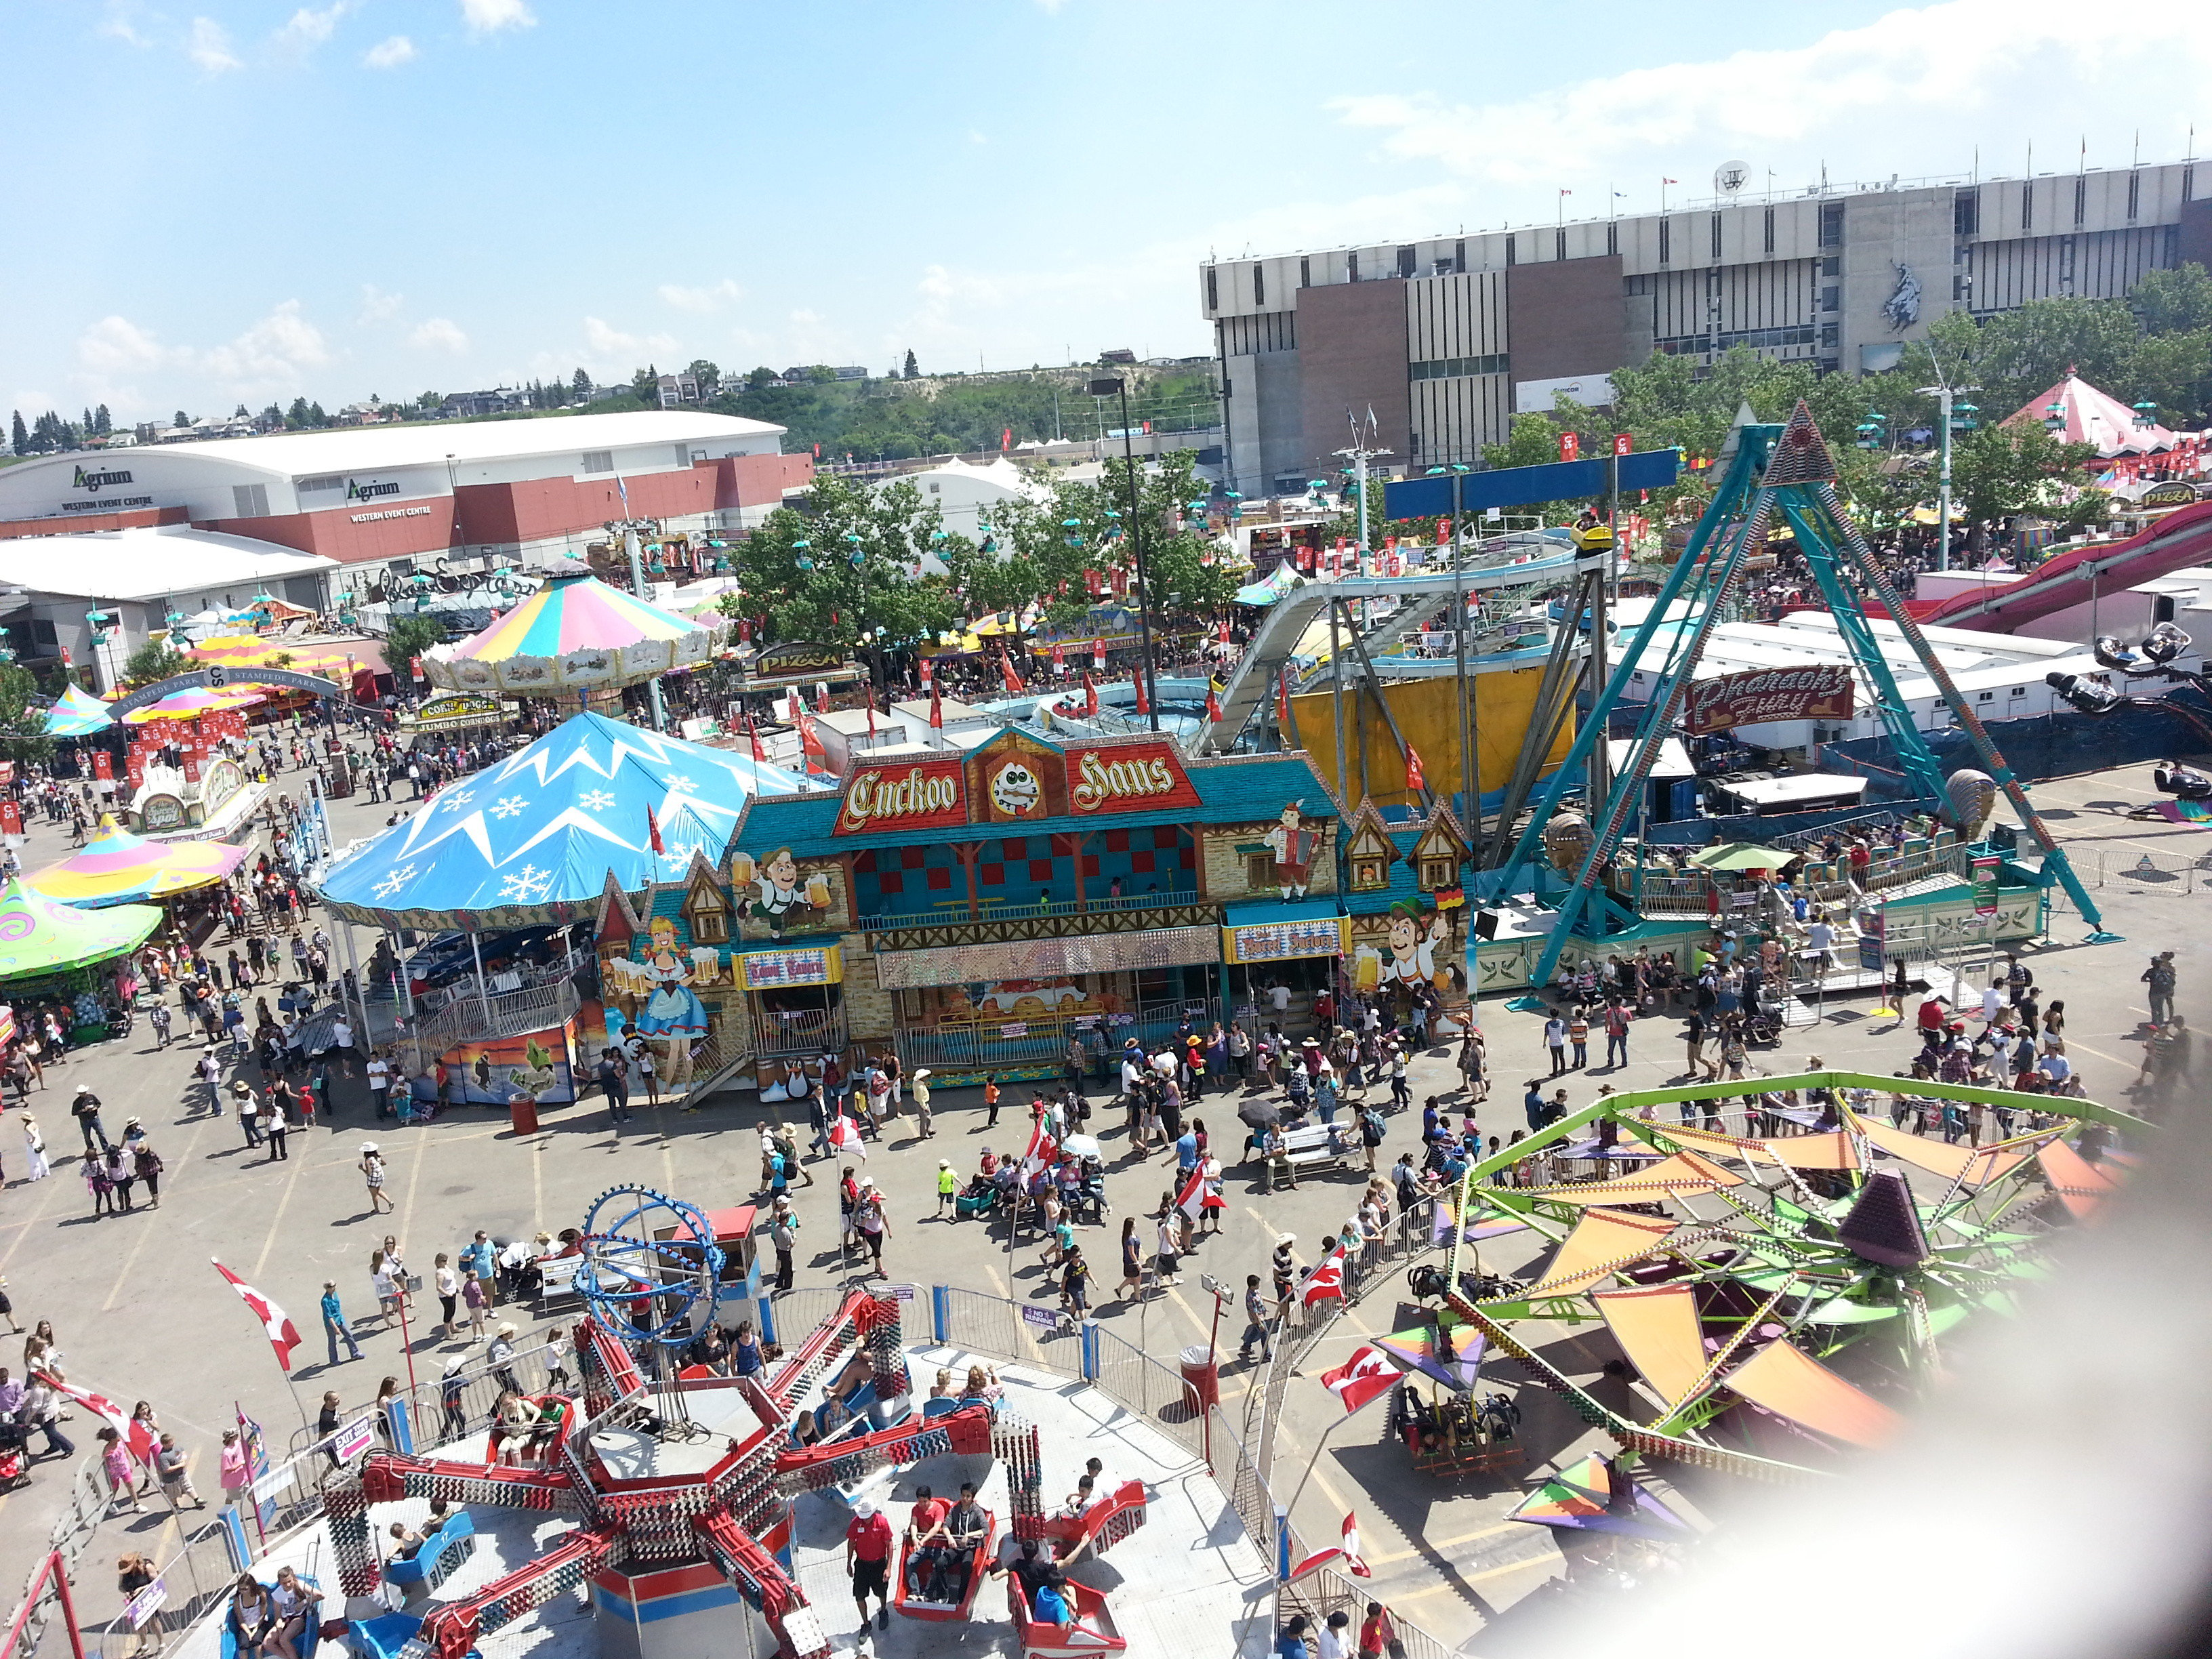 Calgary Stampede, Park View